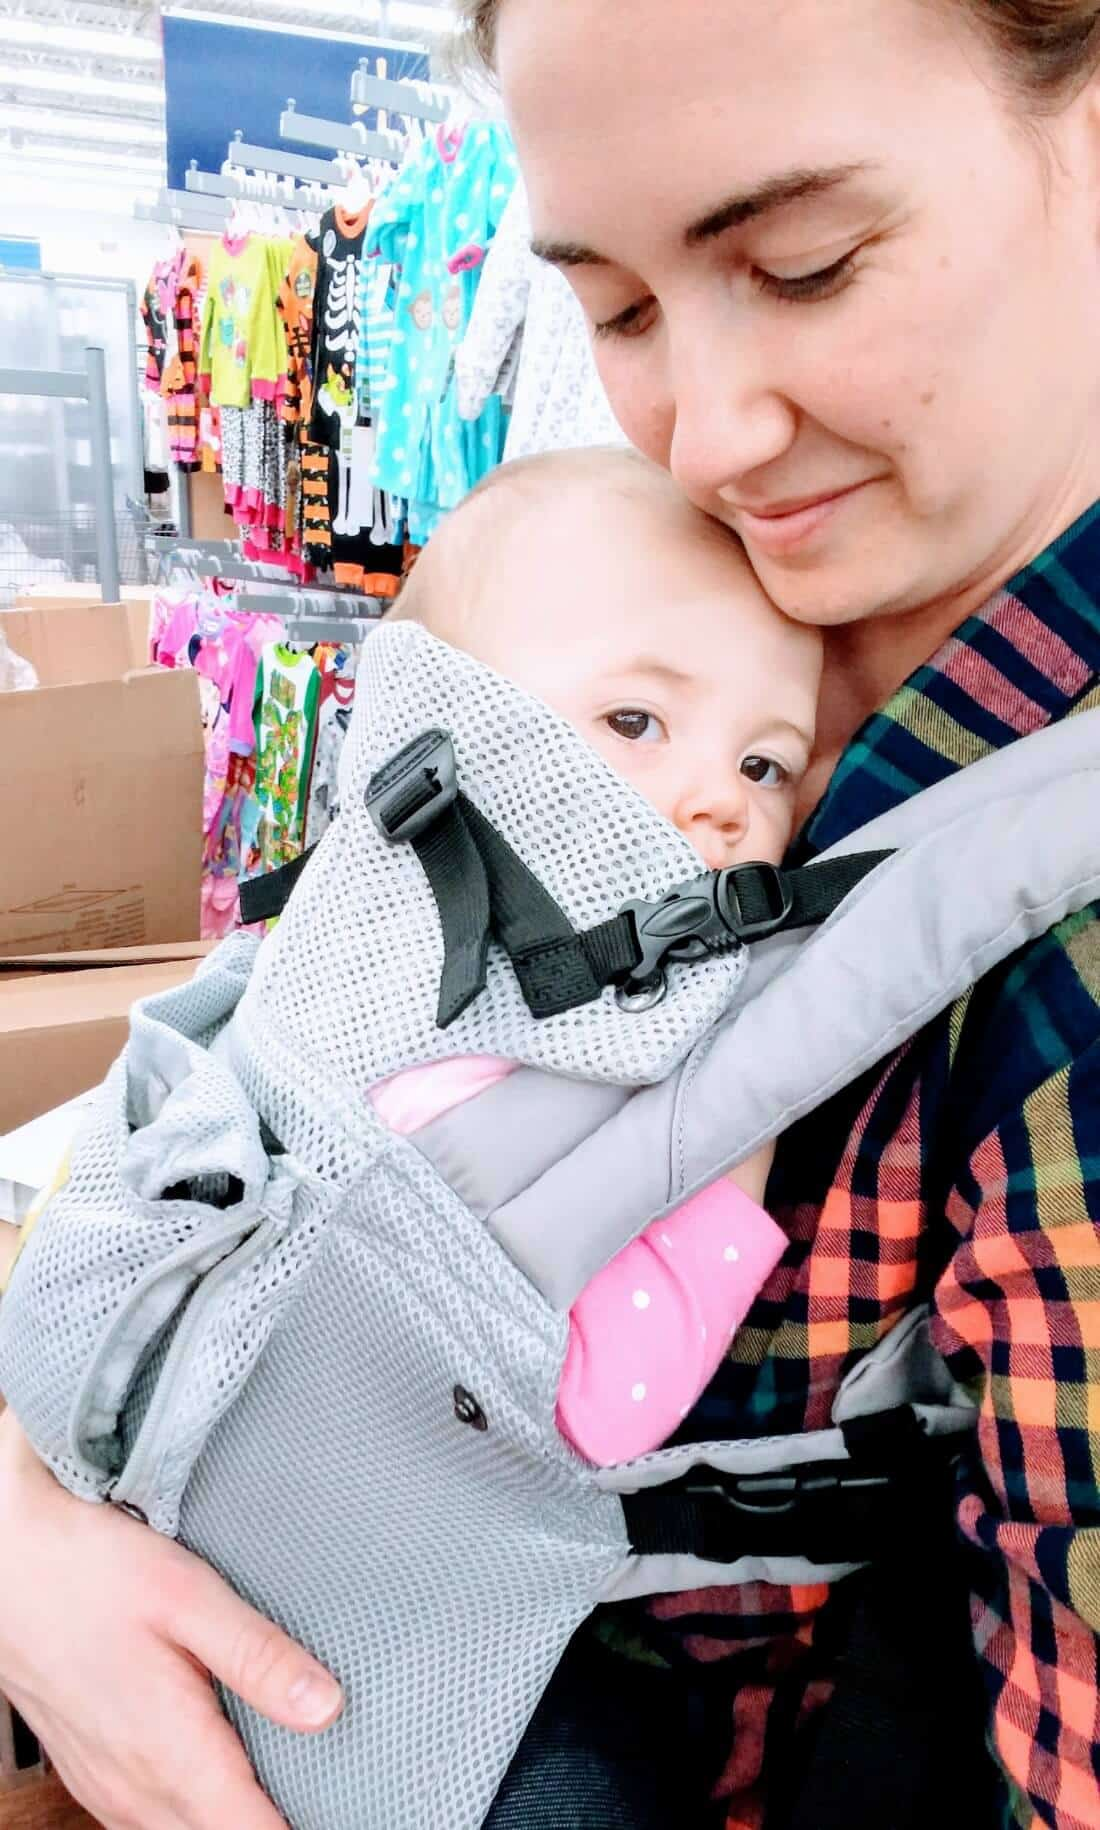 Mom wears baby at store using baby carrier.